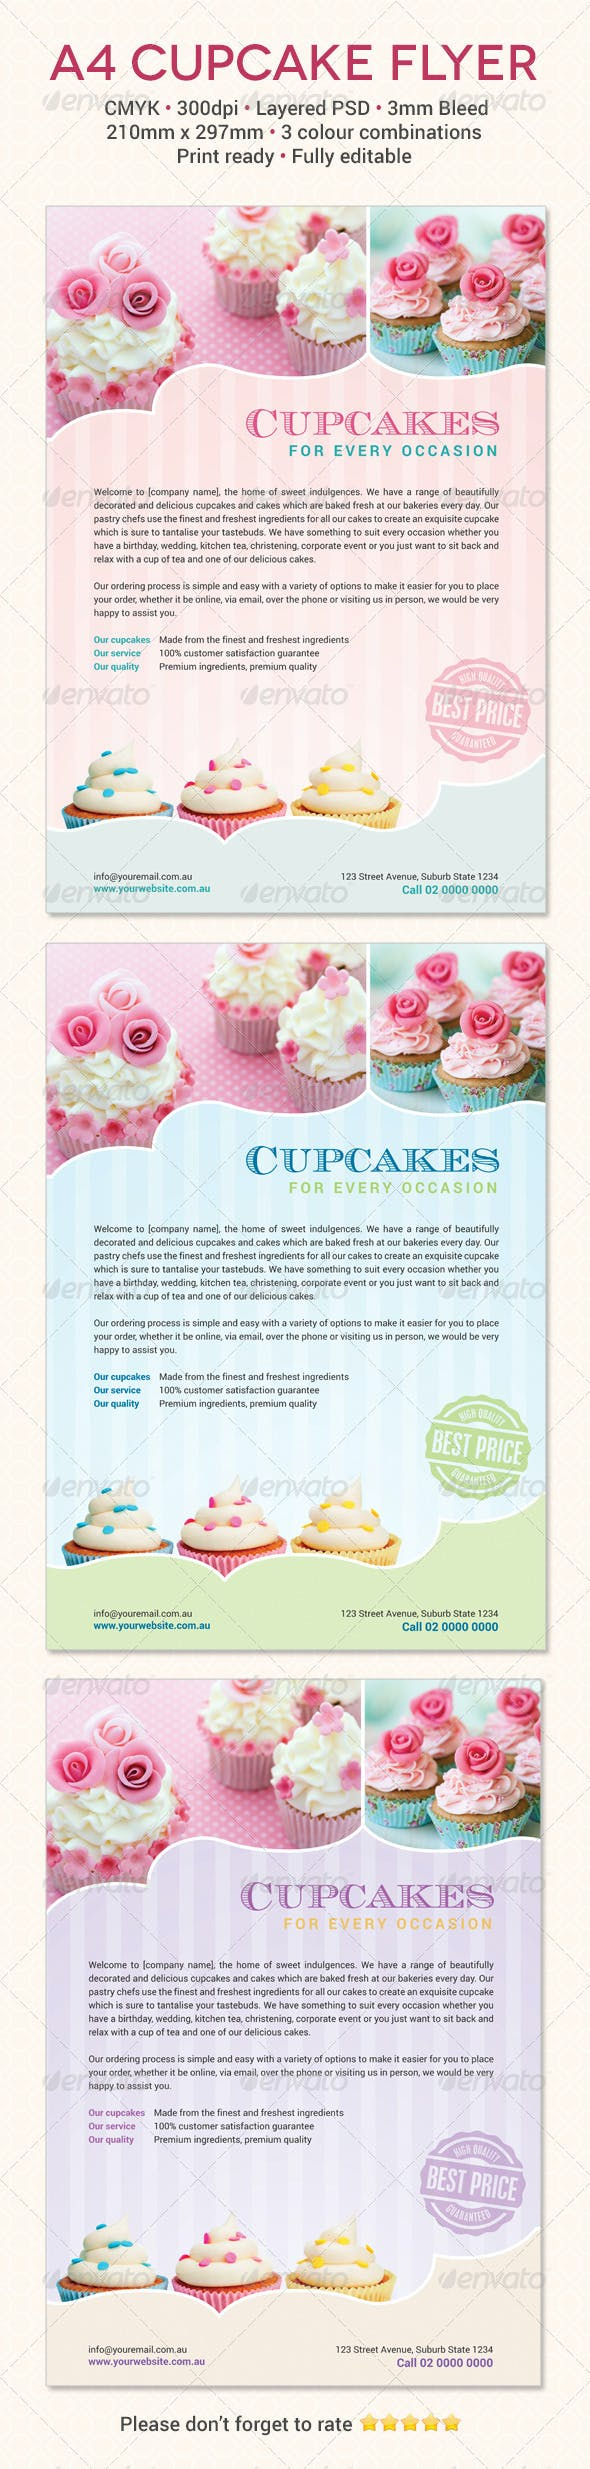 cupcake flyer template by meemeedesign graphicriver